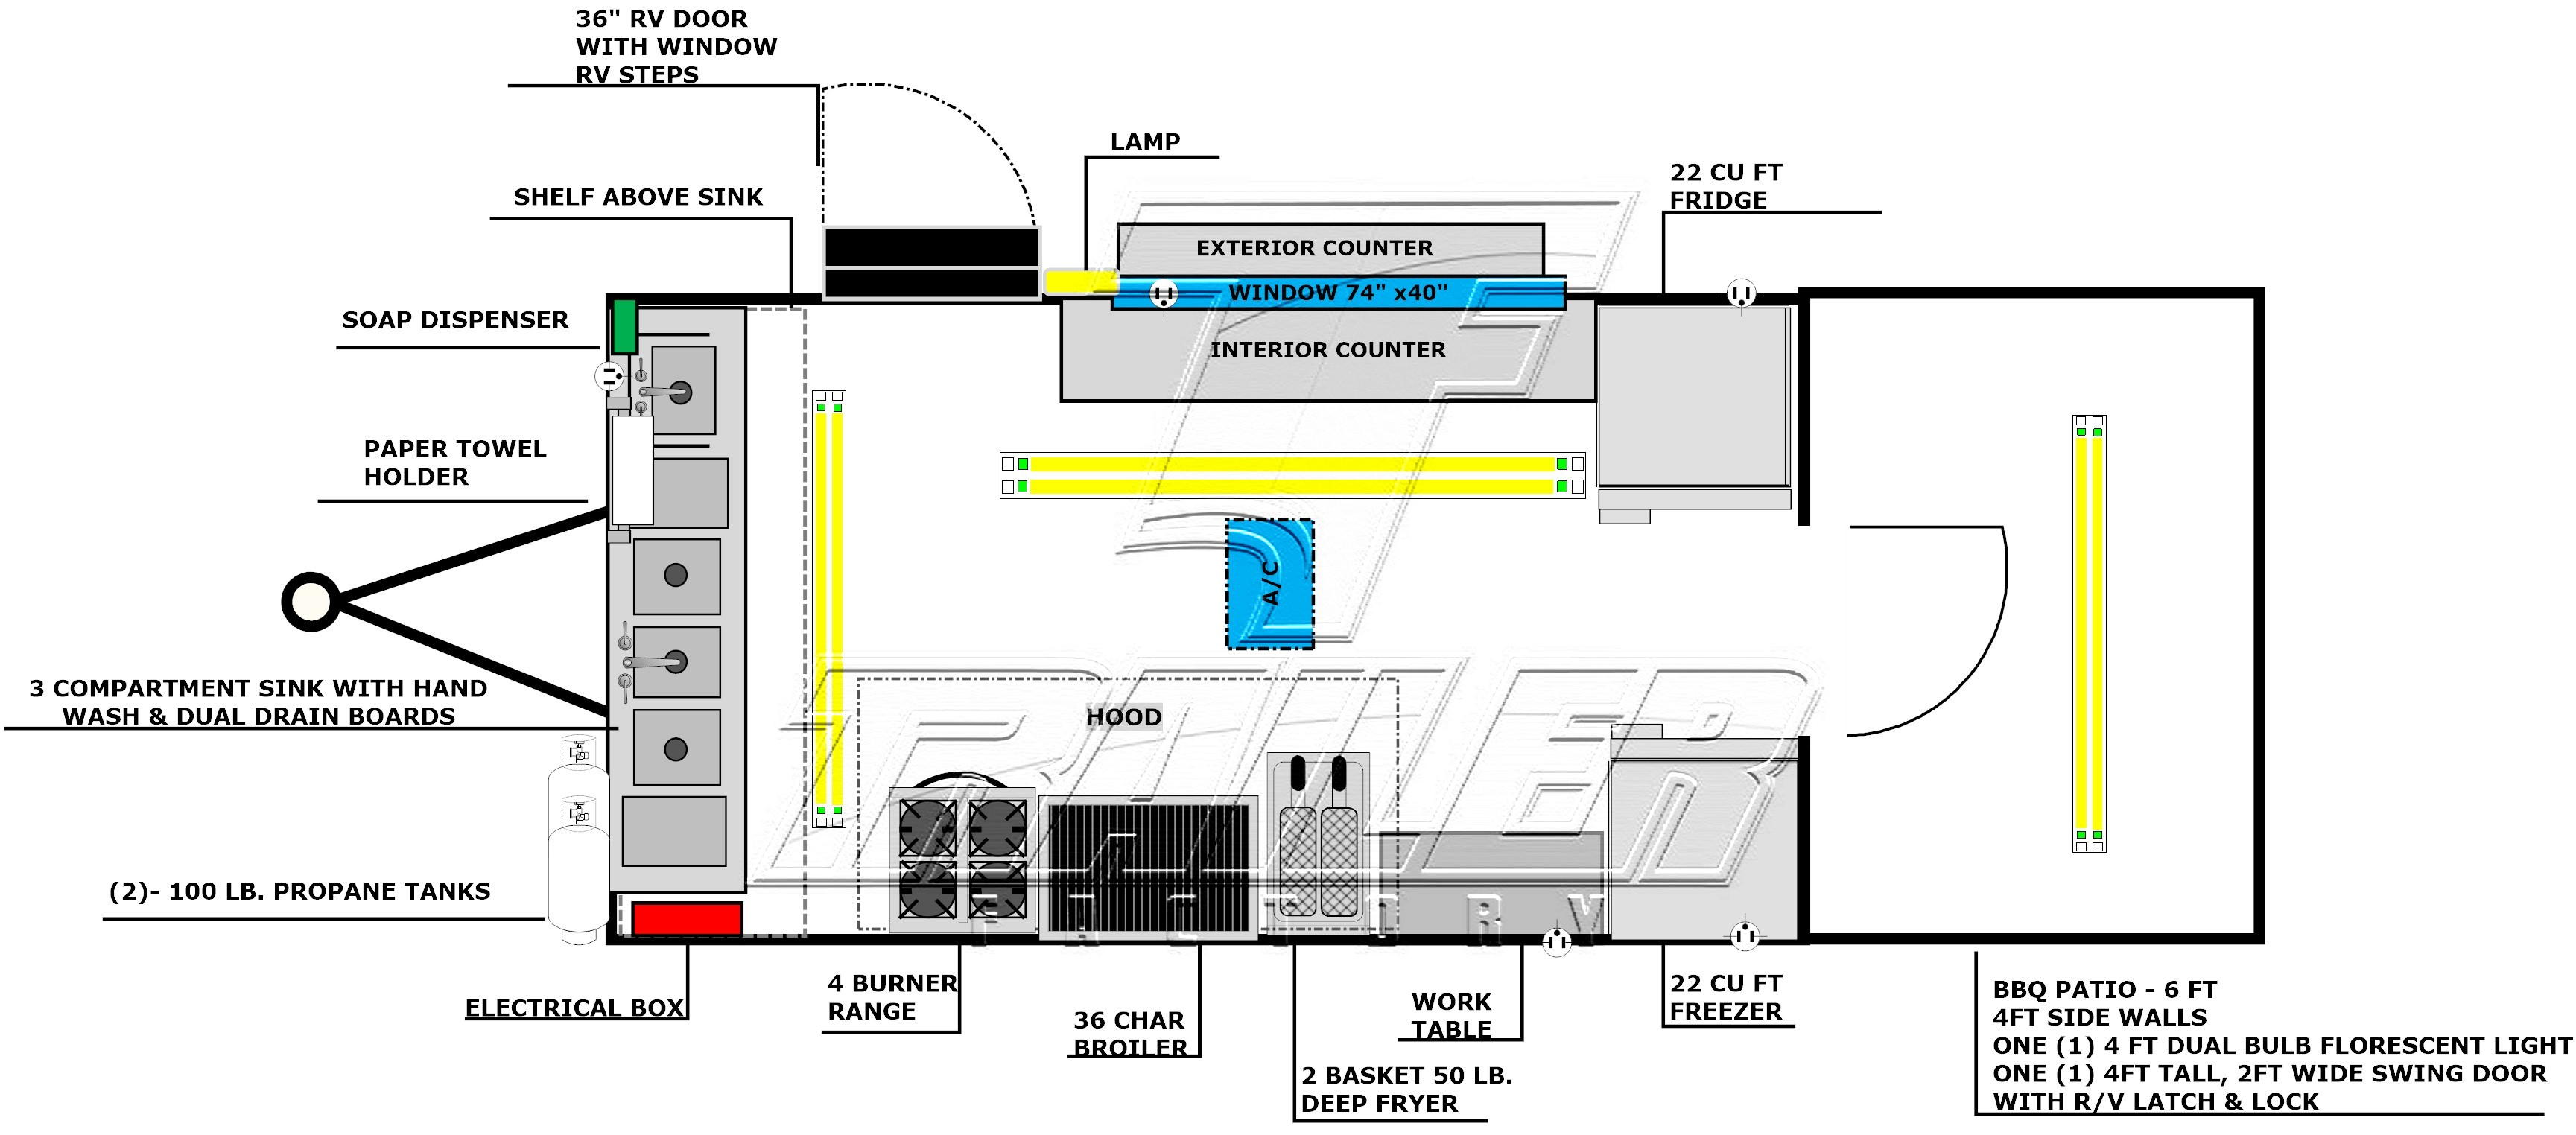 Wiring Diagram For Concession Trailer. Wiring. Electrical